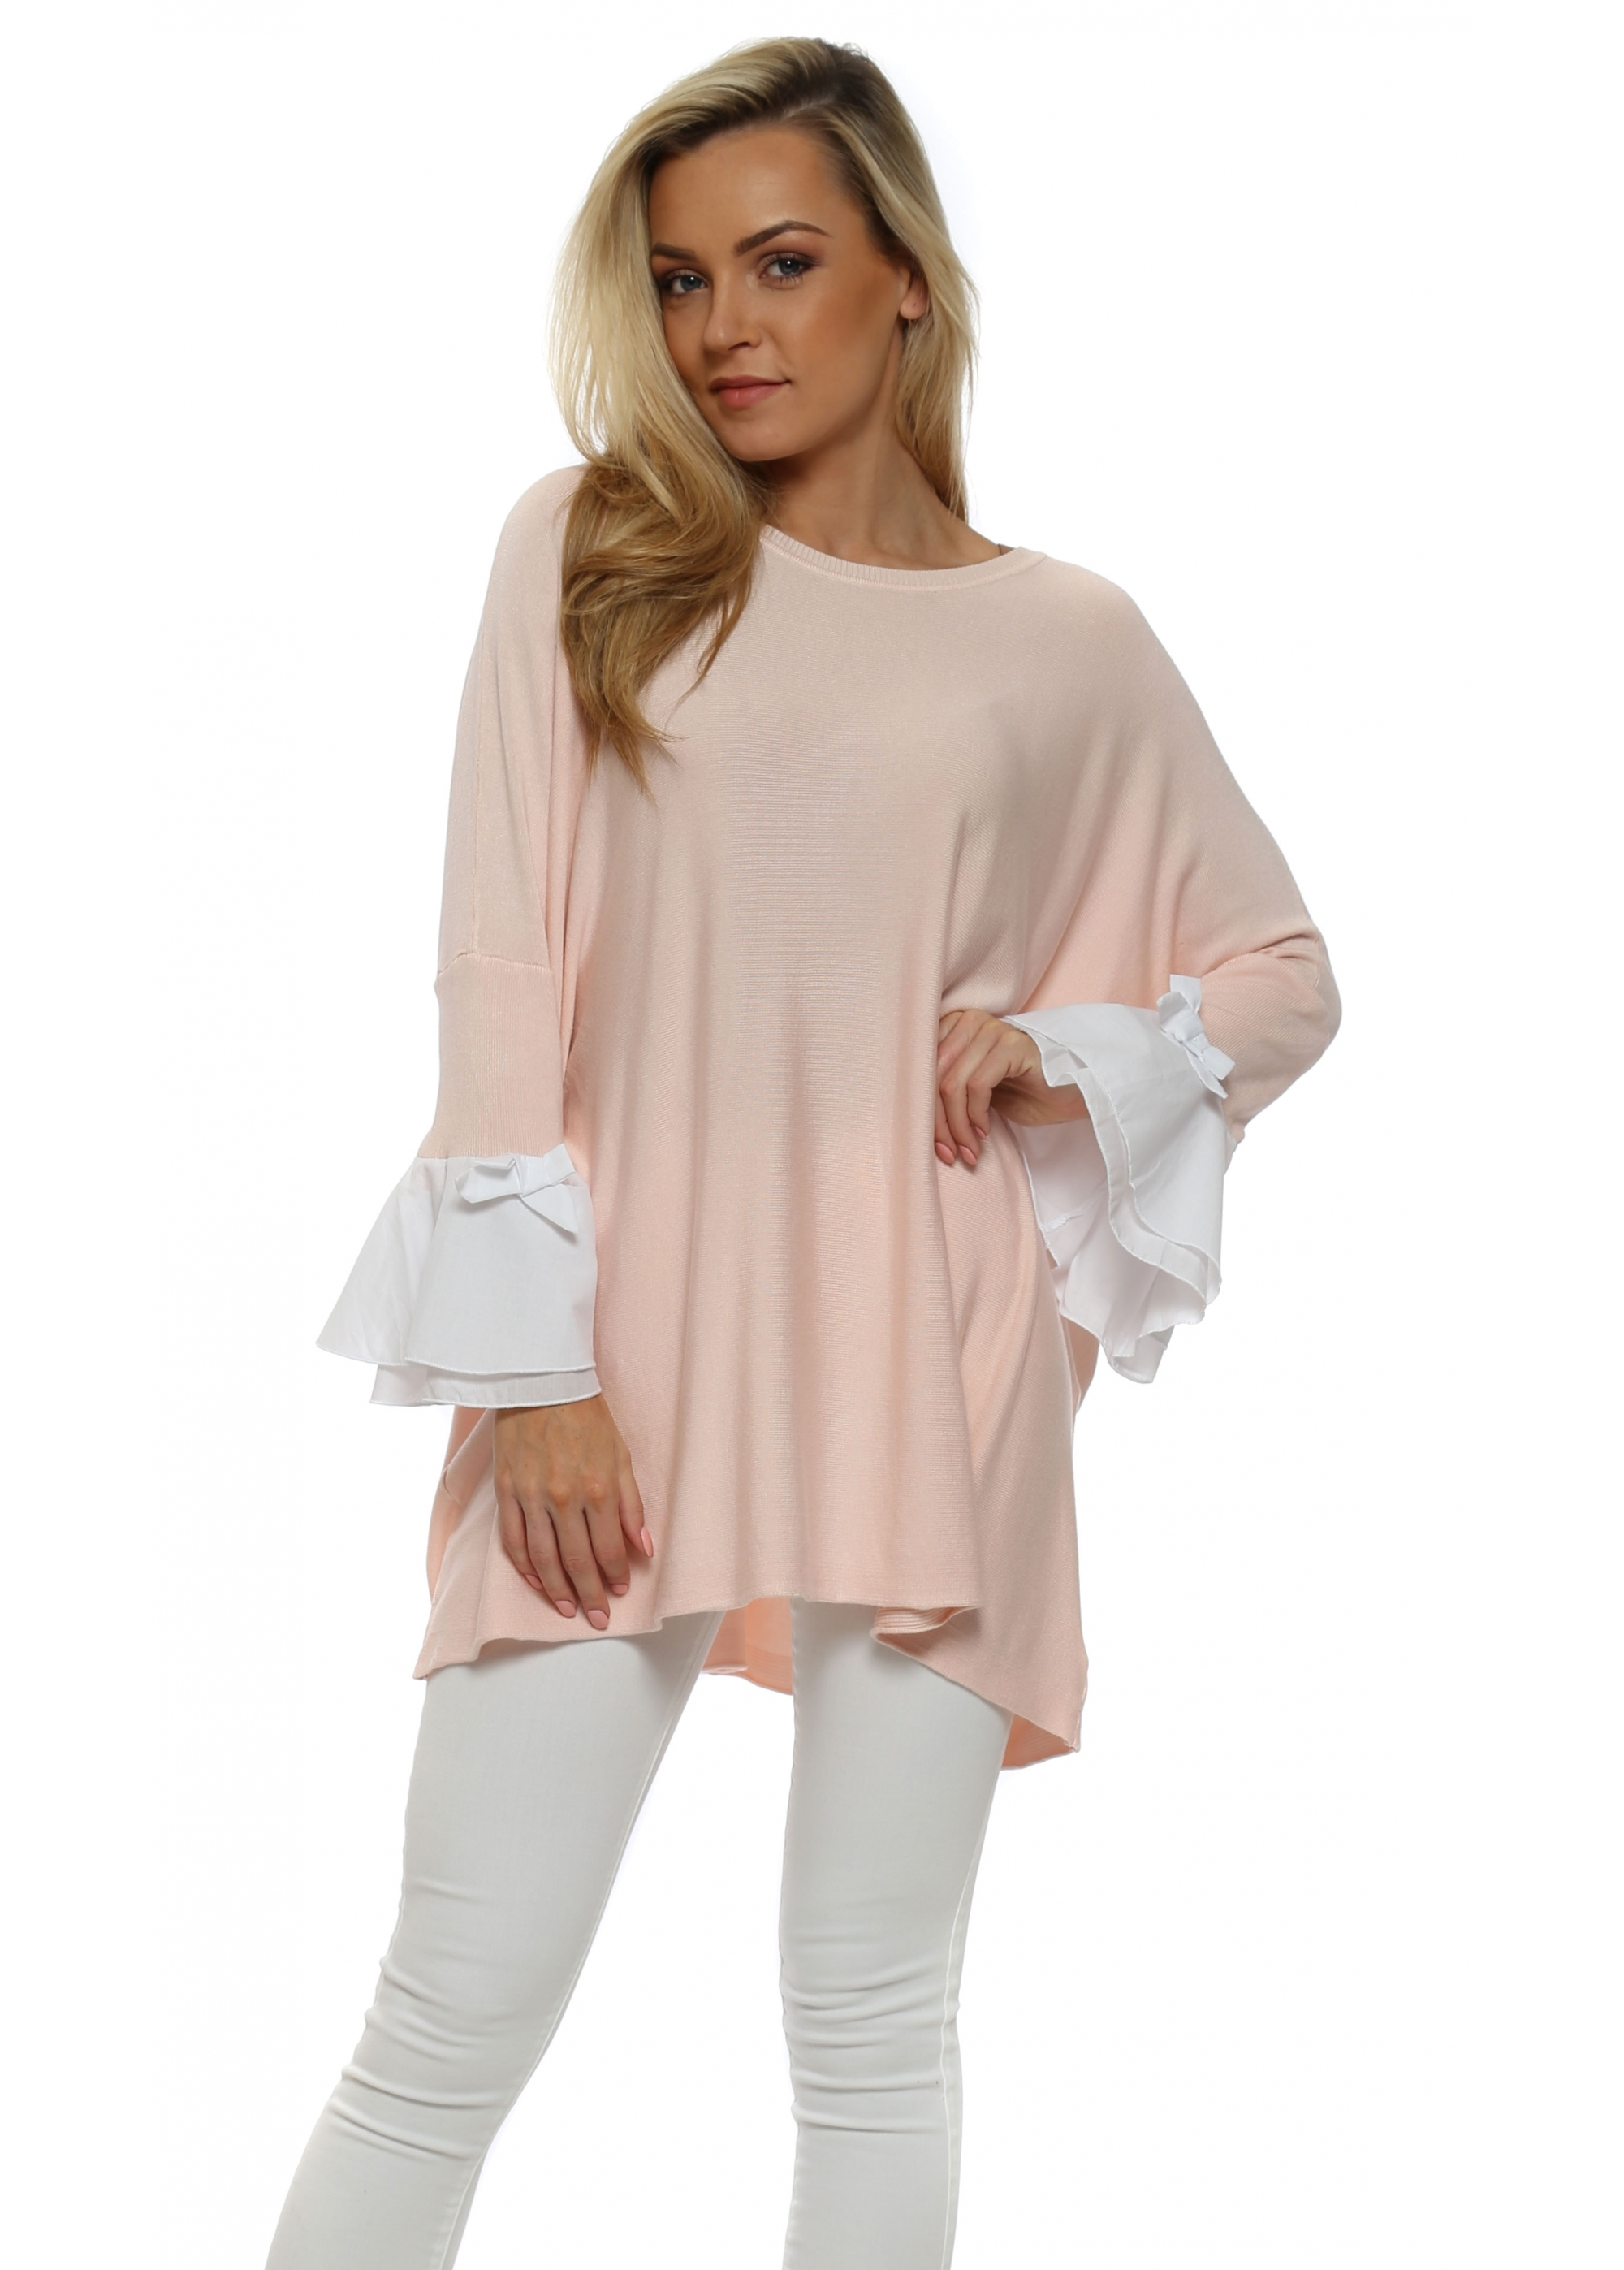 Oversized Baby Pink Jumper With White Cuffs